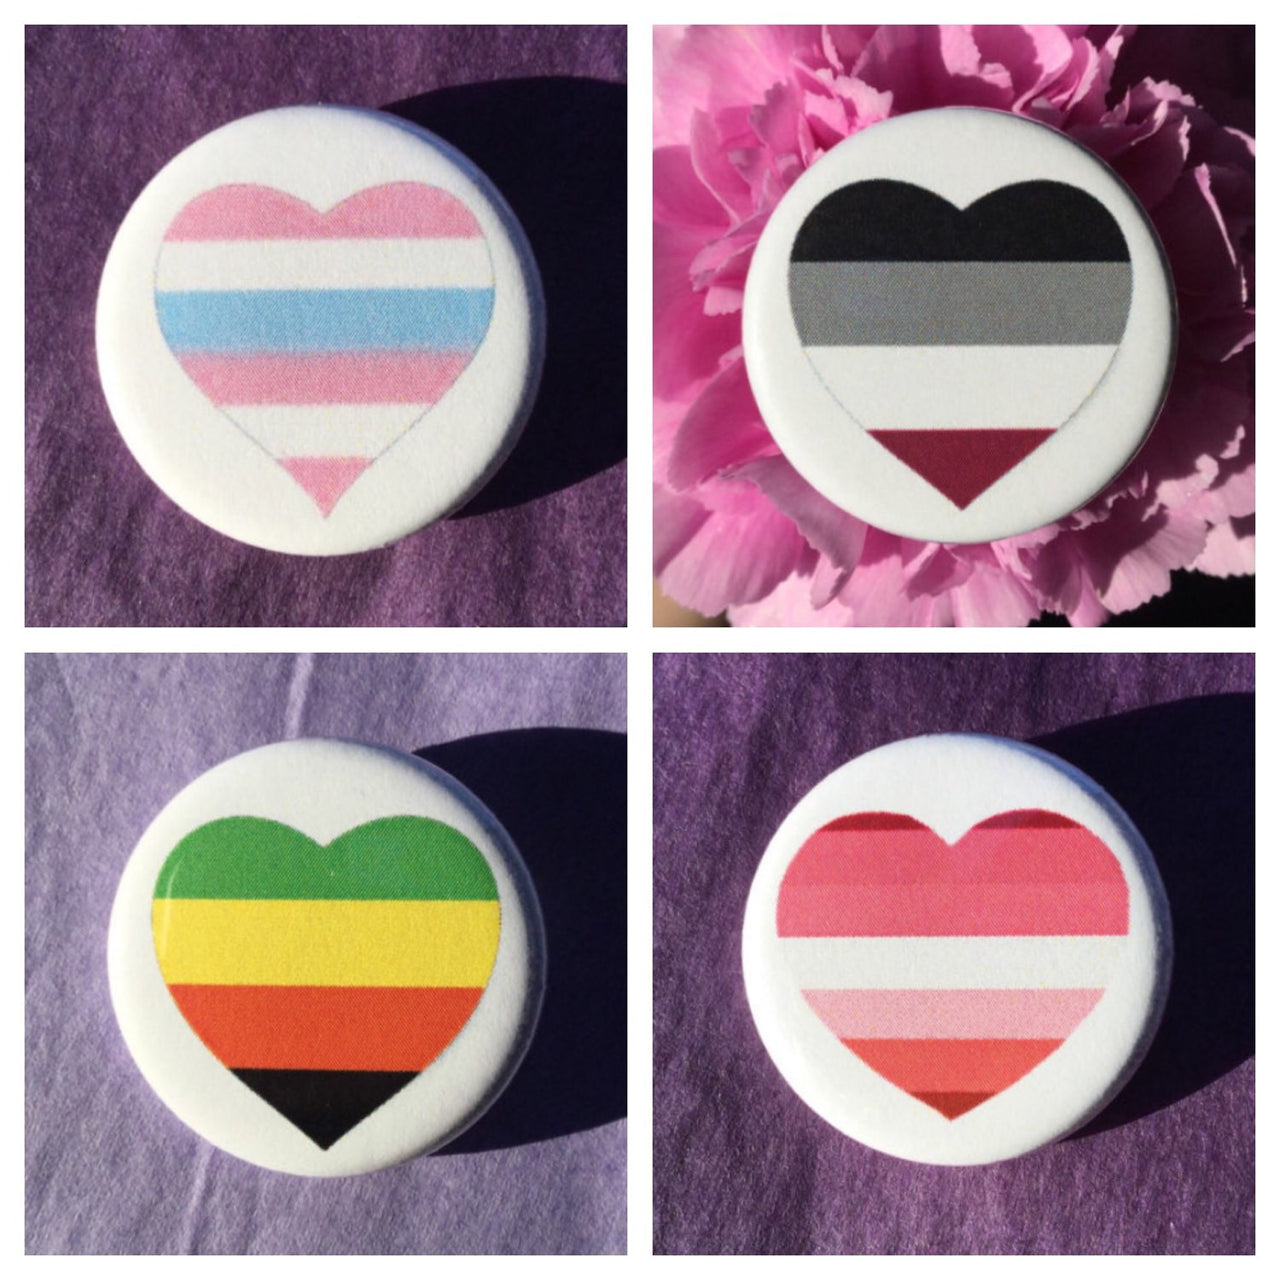 Pride buttons - Aromantic, intersex, lesbian, polysexual or asexual pride